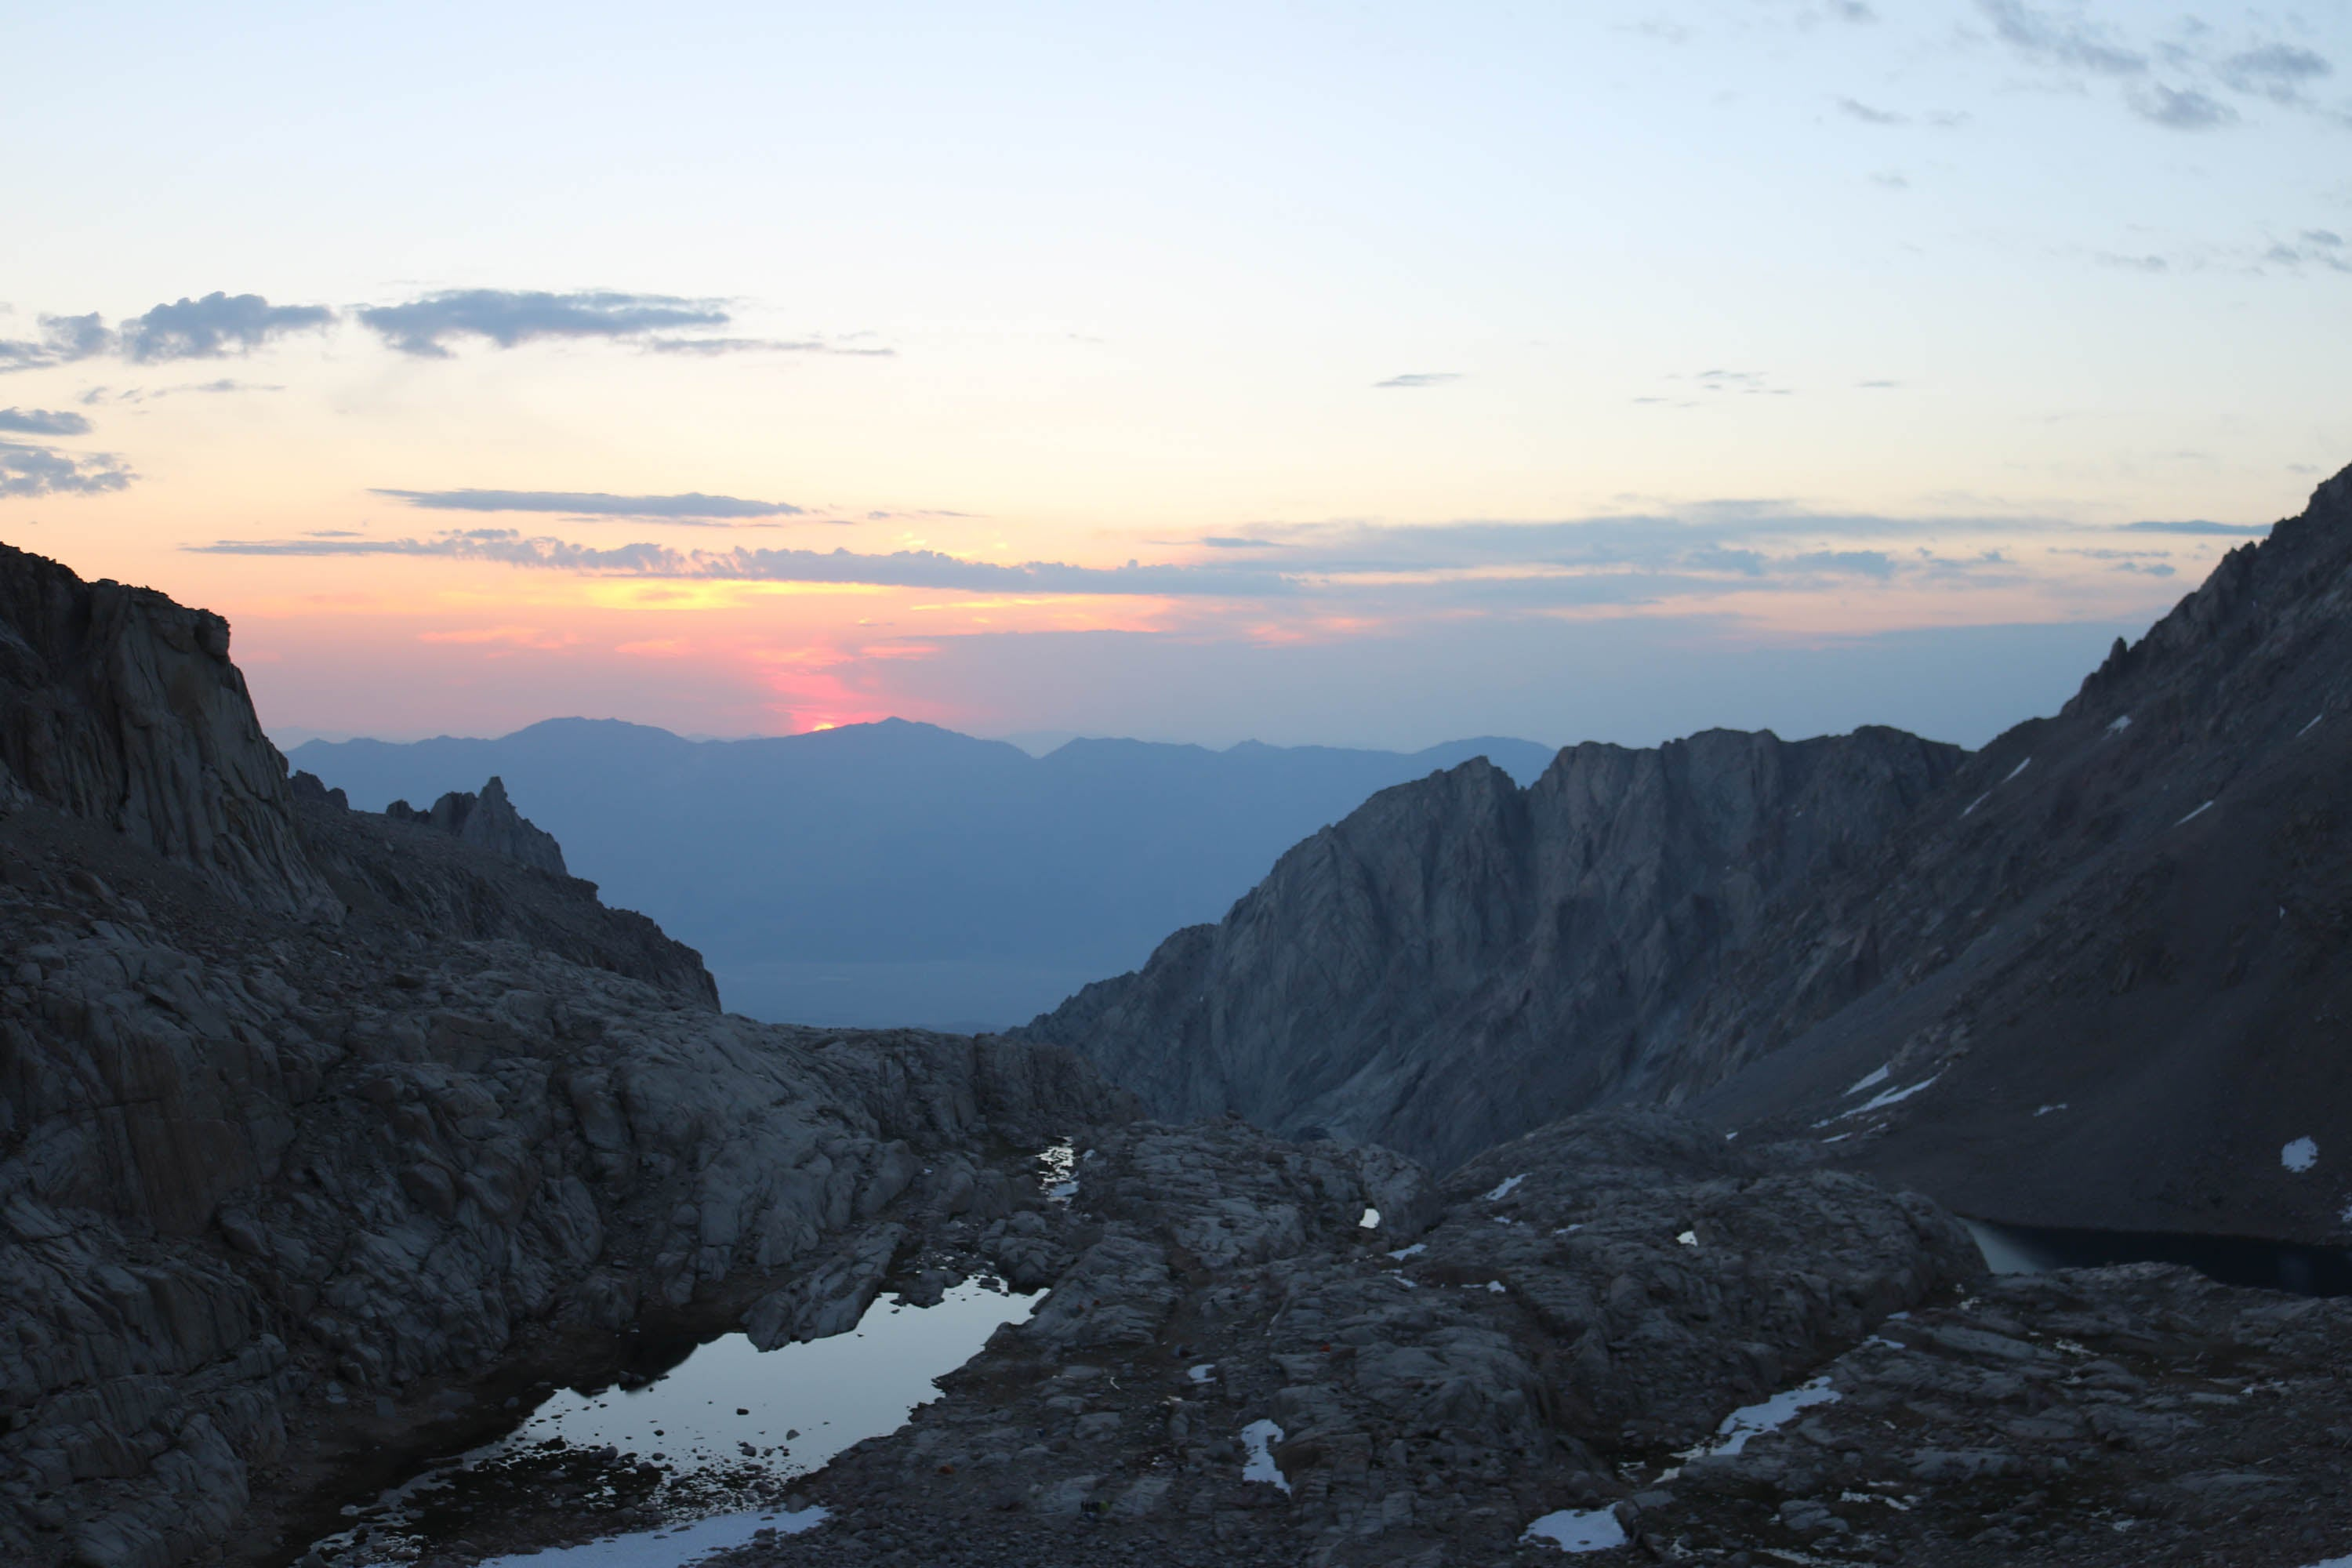 Sun Rise from begining of 99 switchbacks on Mt. Whitney